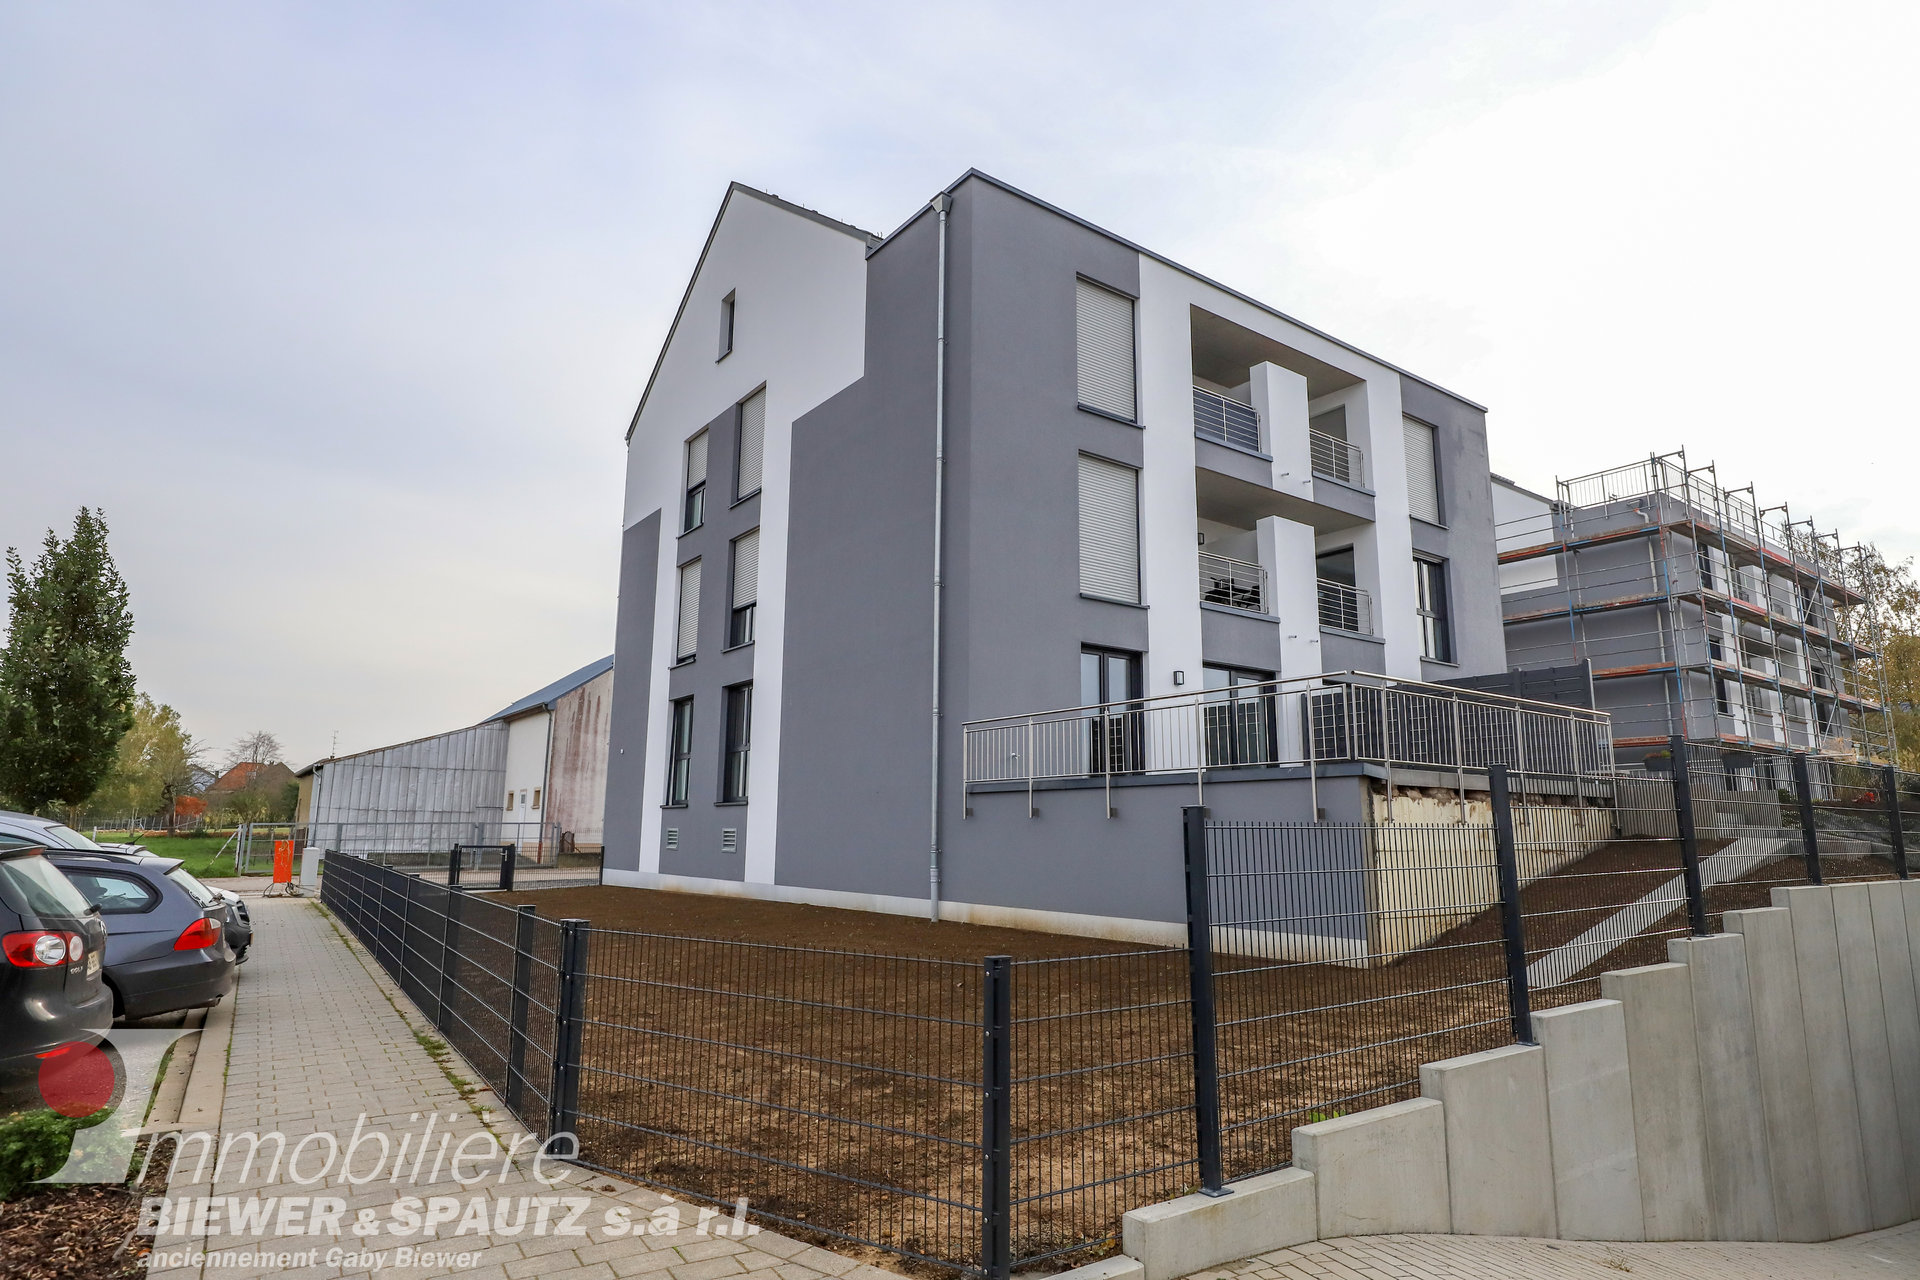 RENTED - new apartment with 2 bedrooms in Berdorf